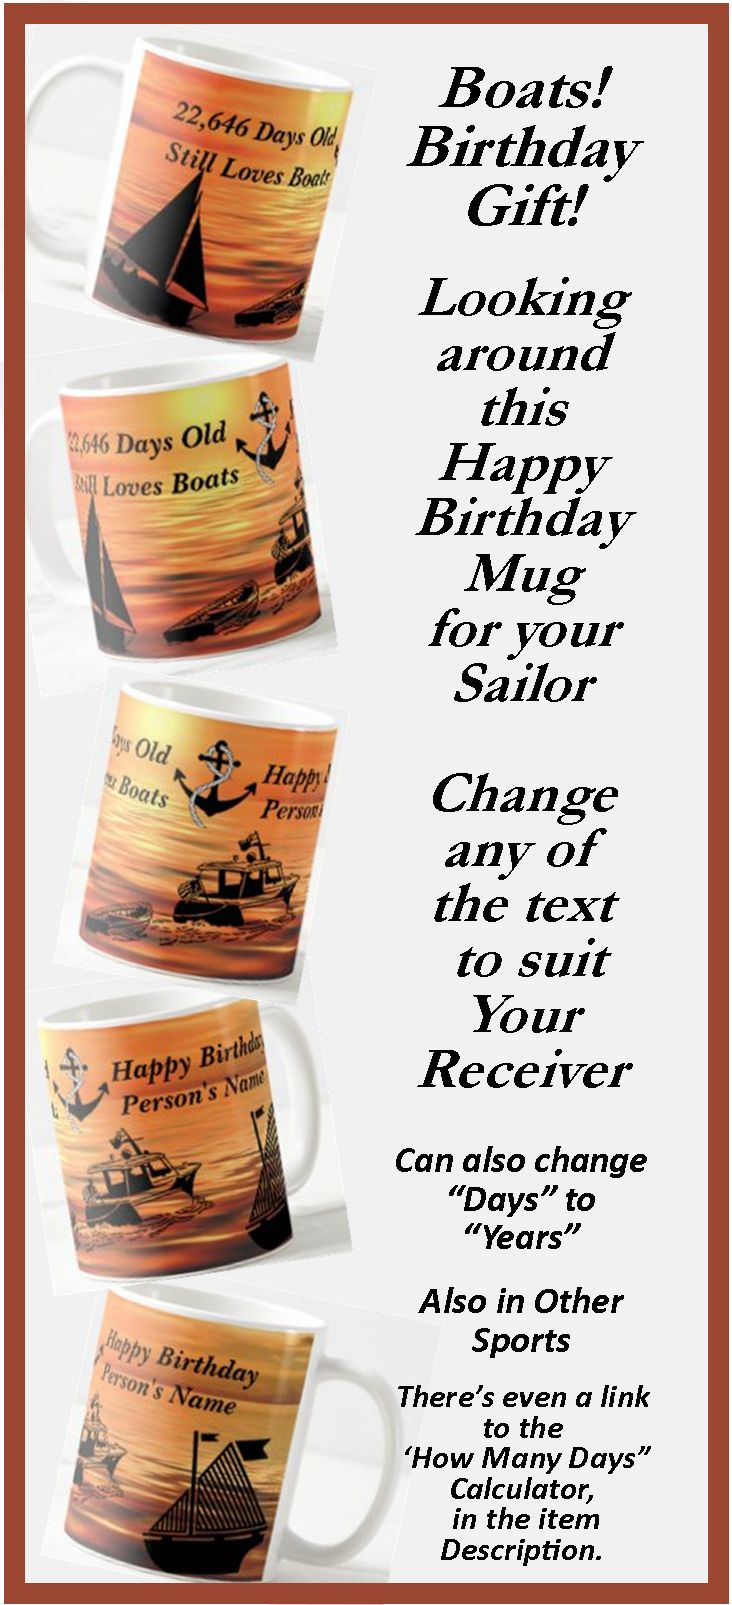 """Great Birthday Gift for the Captain of the motorboat or Sailor of the Sailing boat.  - - Change the Days or Years, - - - Change the Name to suit your Recipient. - - there's a """"How many Day"""" calculator link in the item description."""